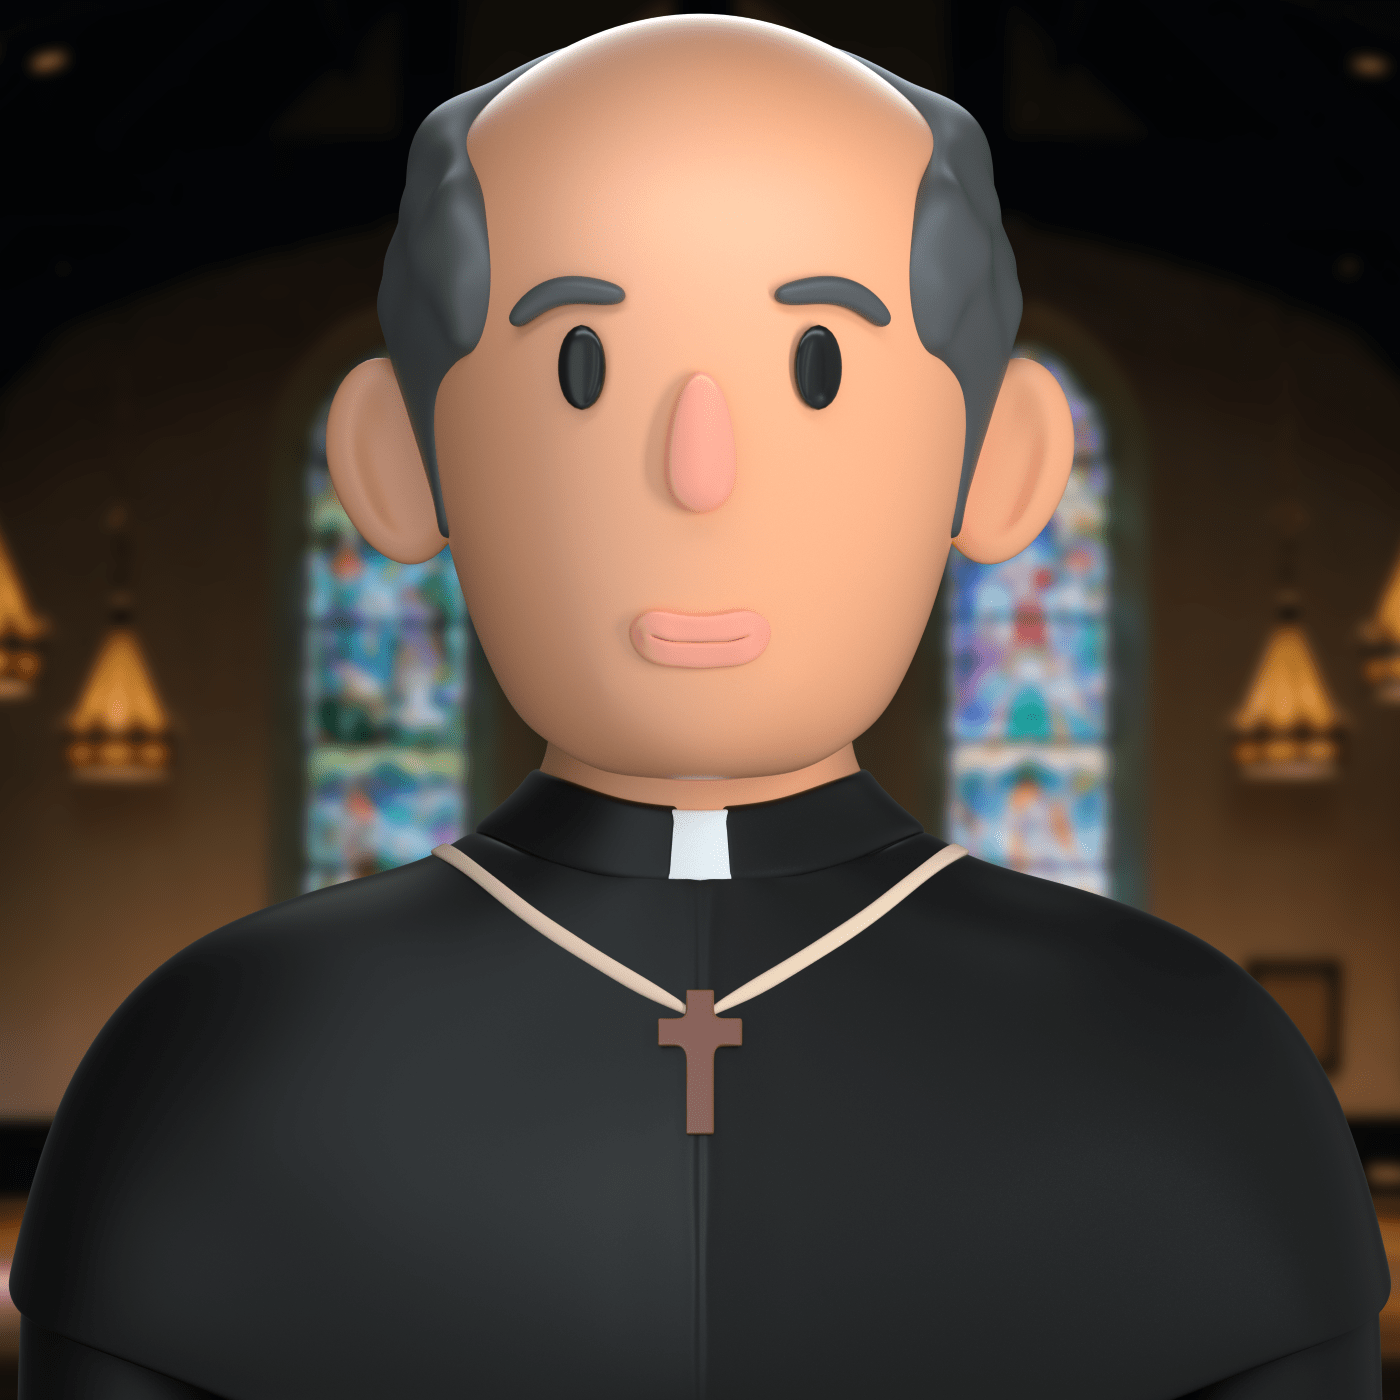 a priest character in 3d design style